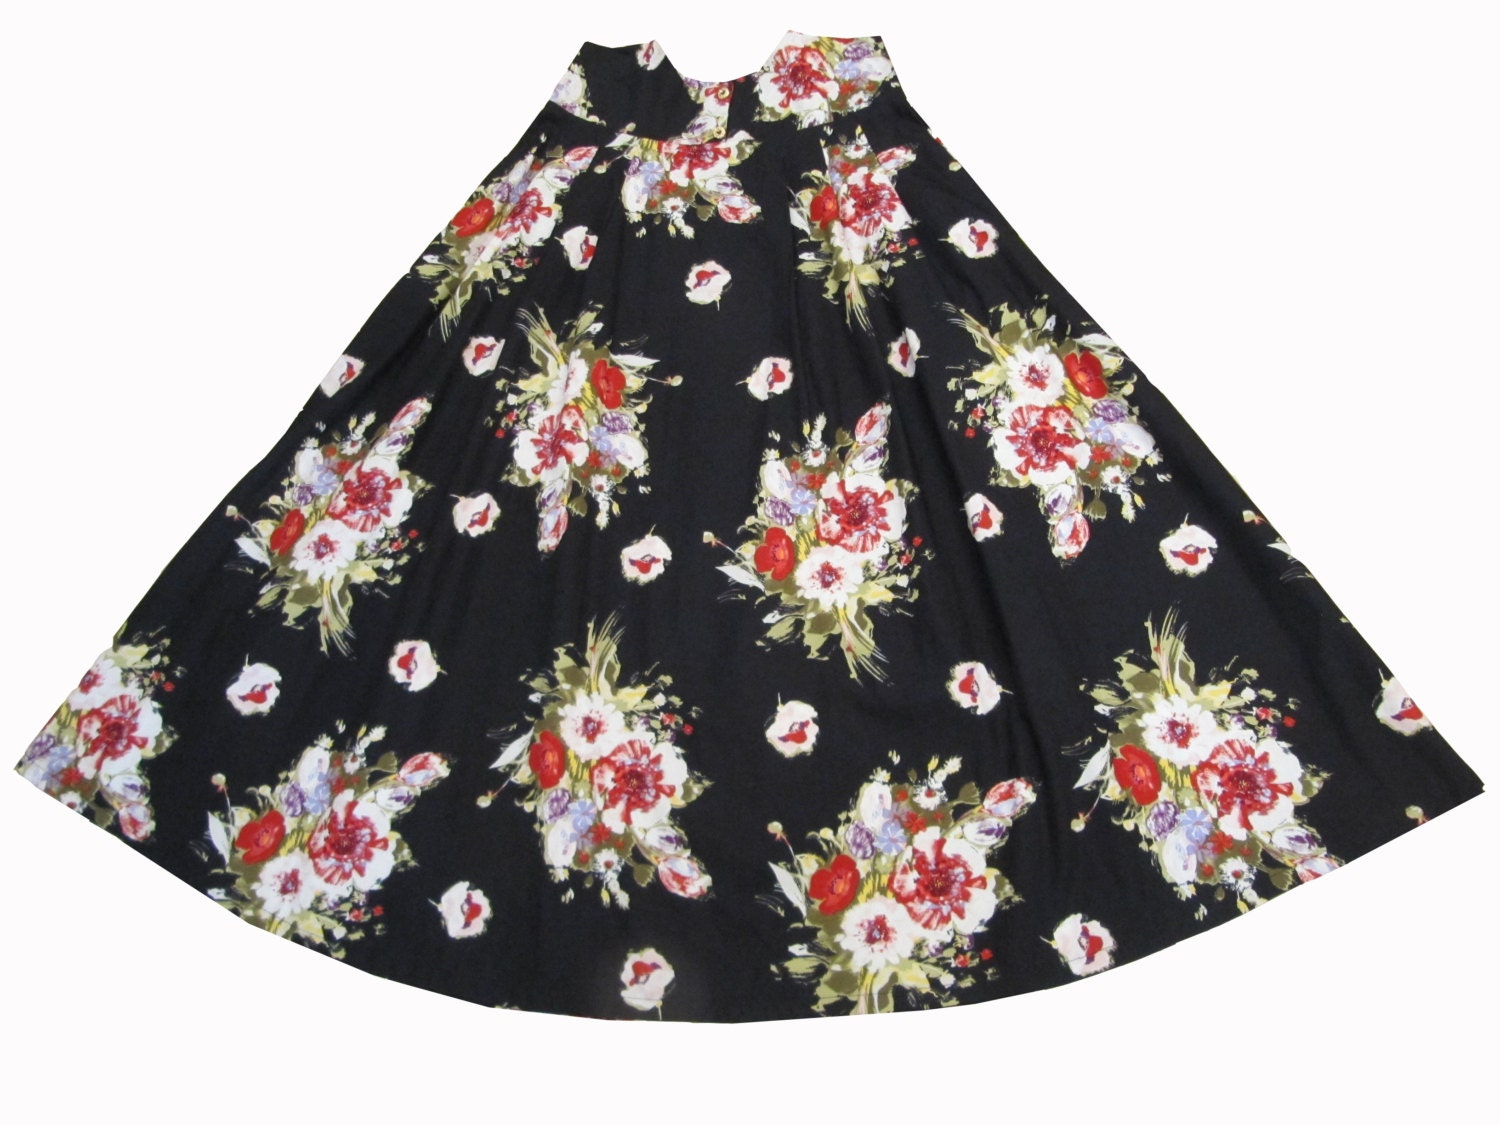 high waisted skirt skirt floral skirt pleated skirt